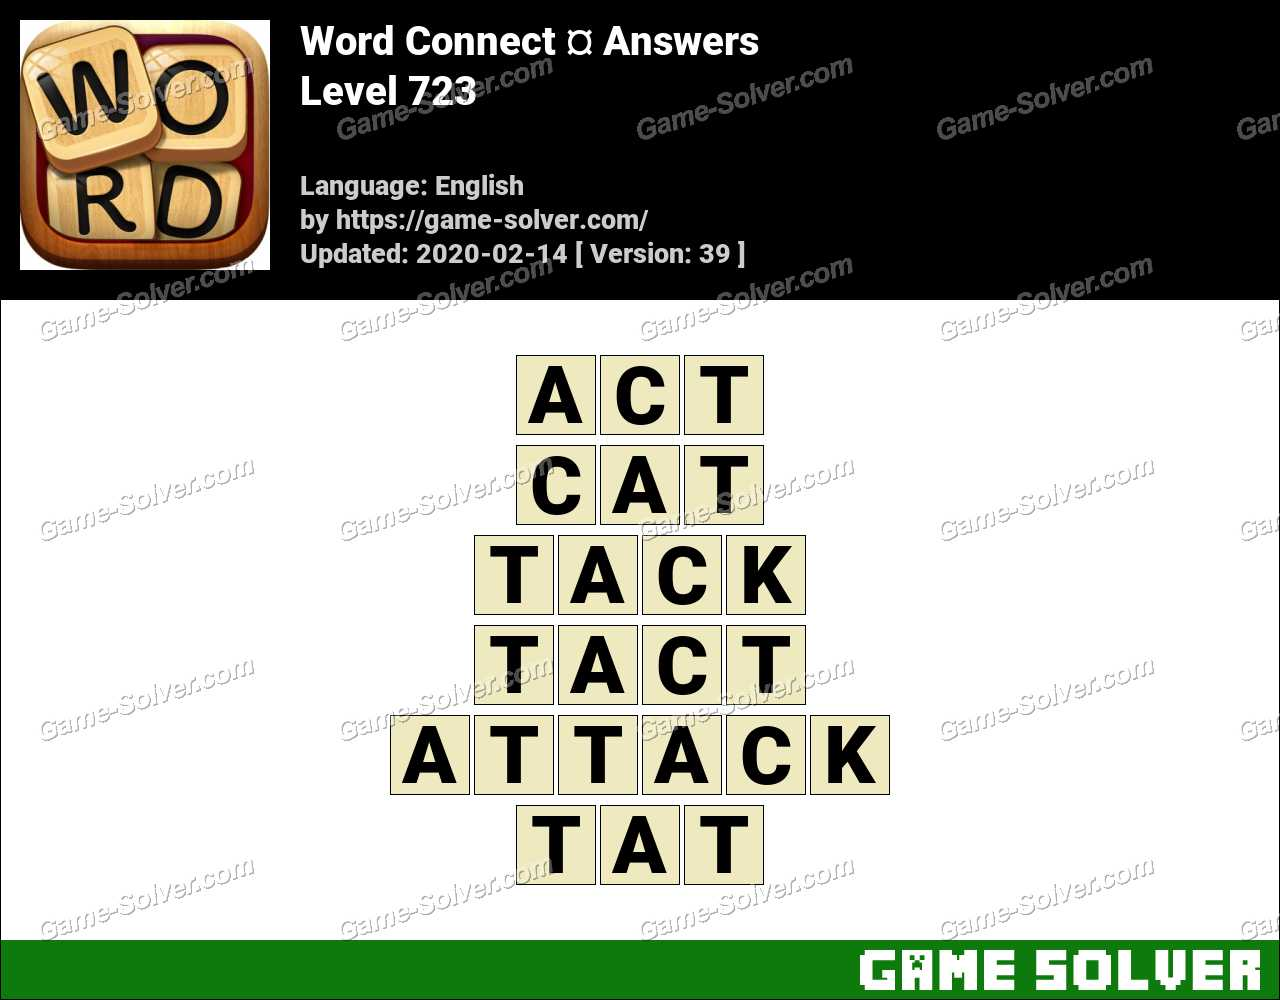 Word Connect Level 723 Answers